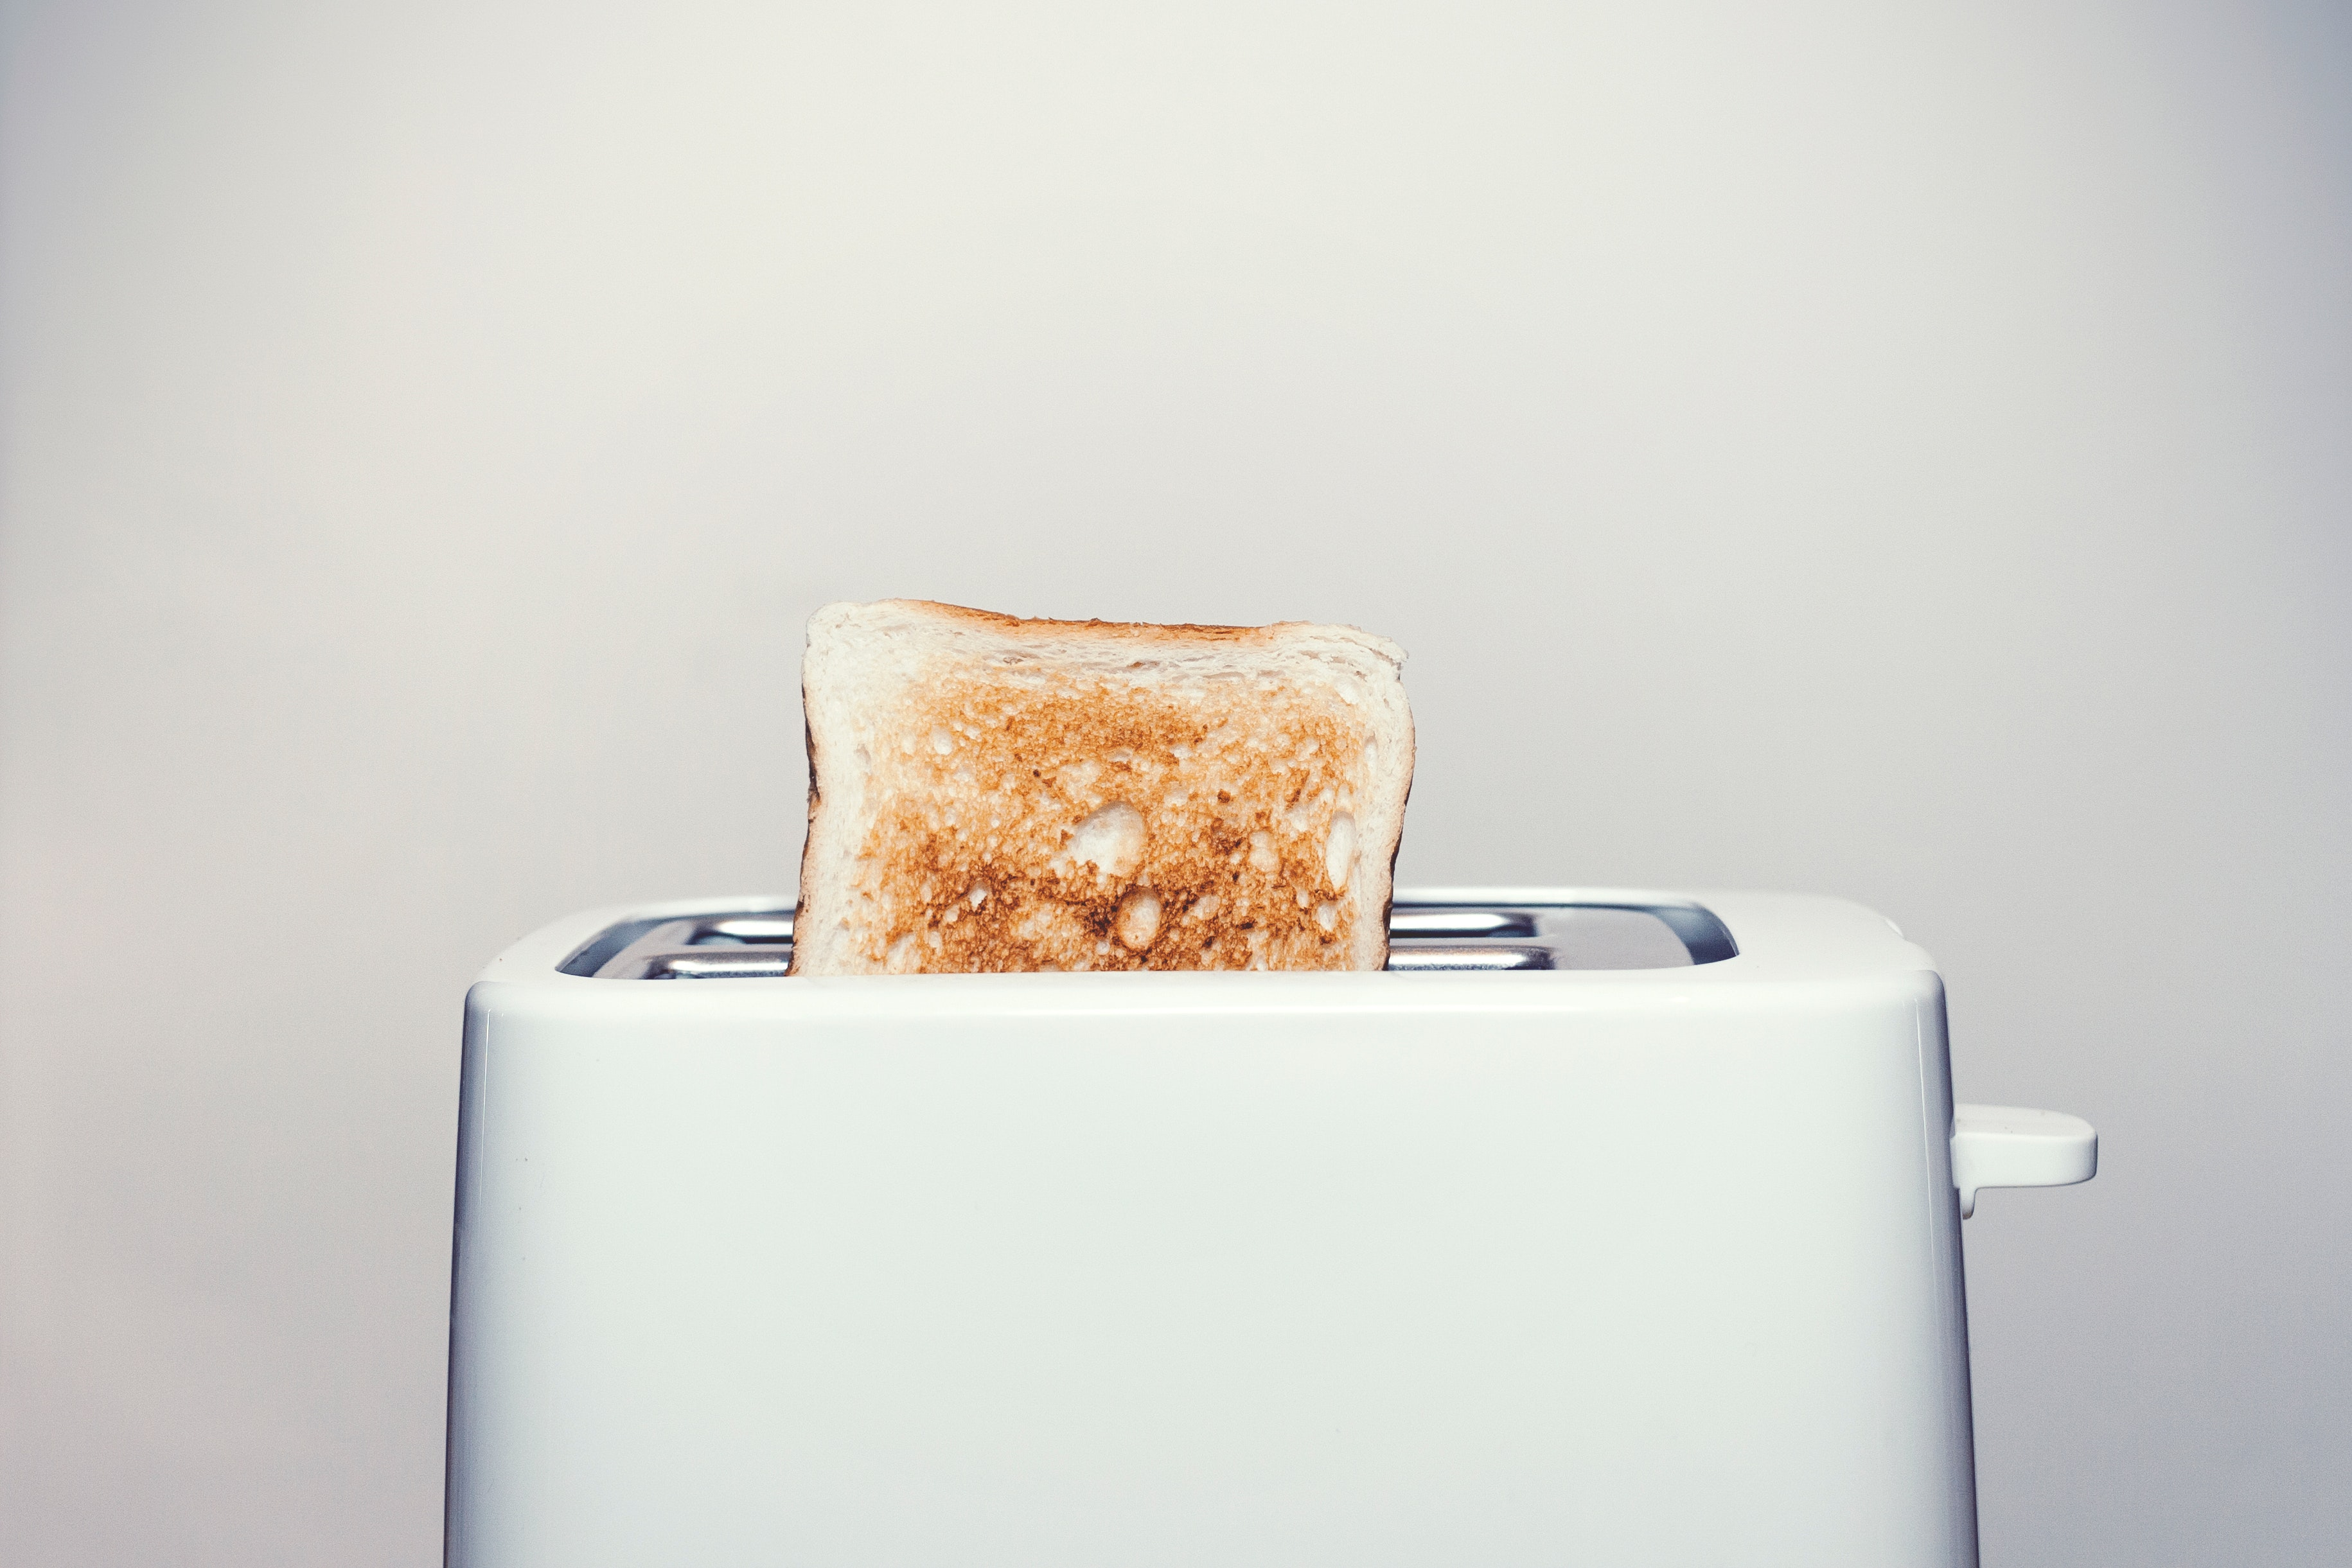 How to Deep Clean a Toaster?